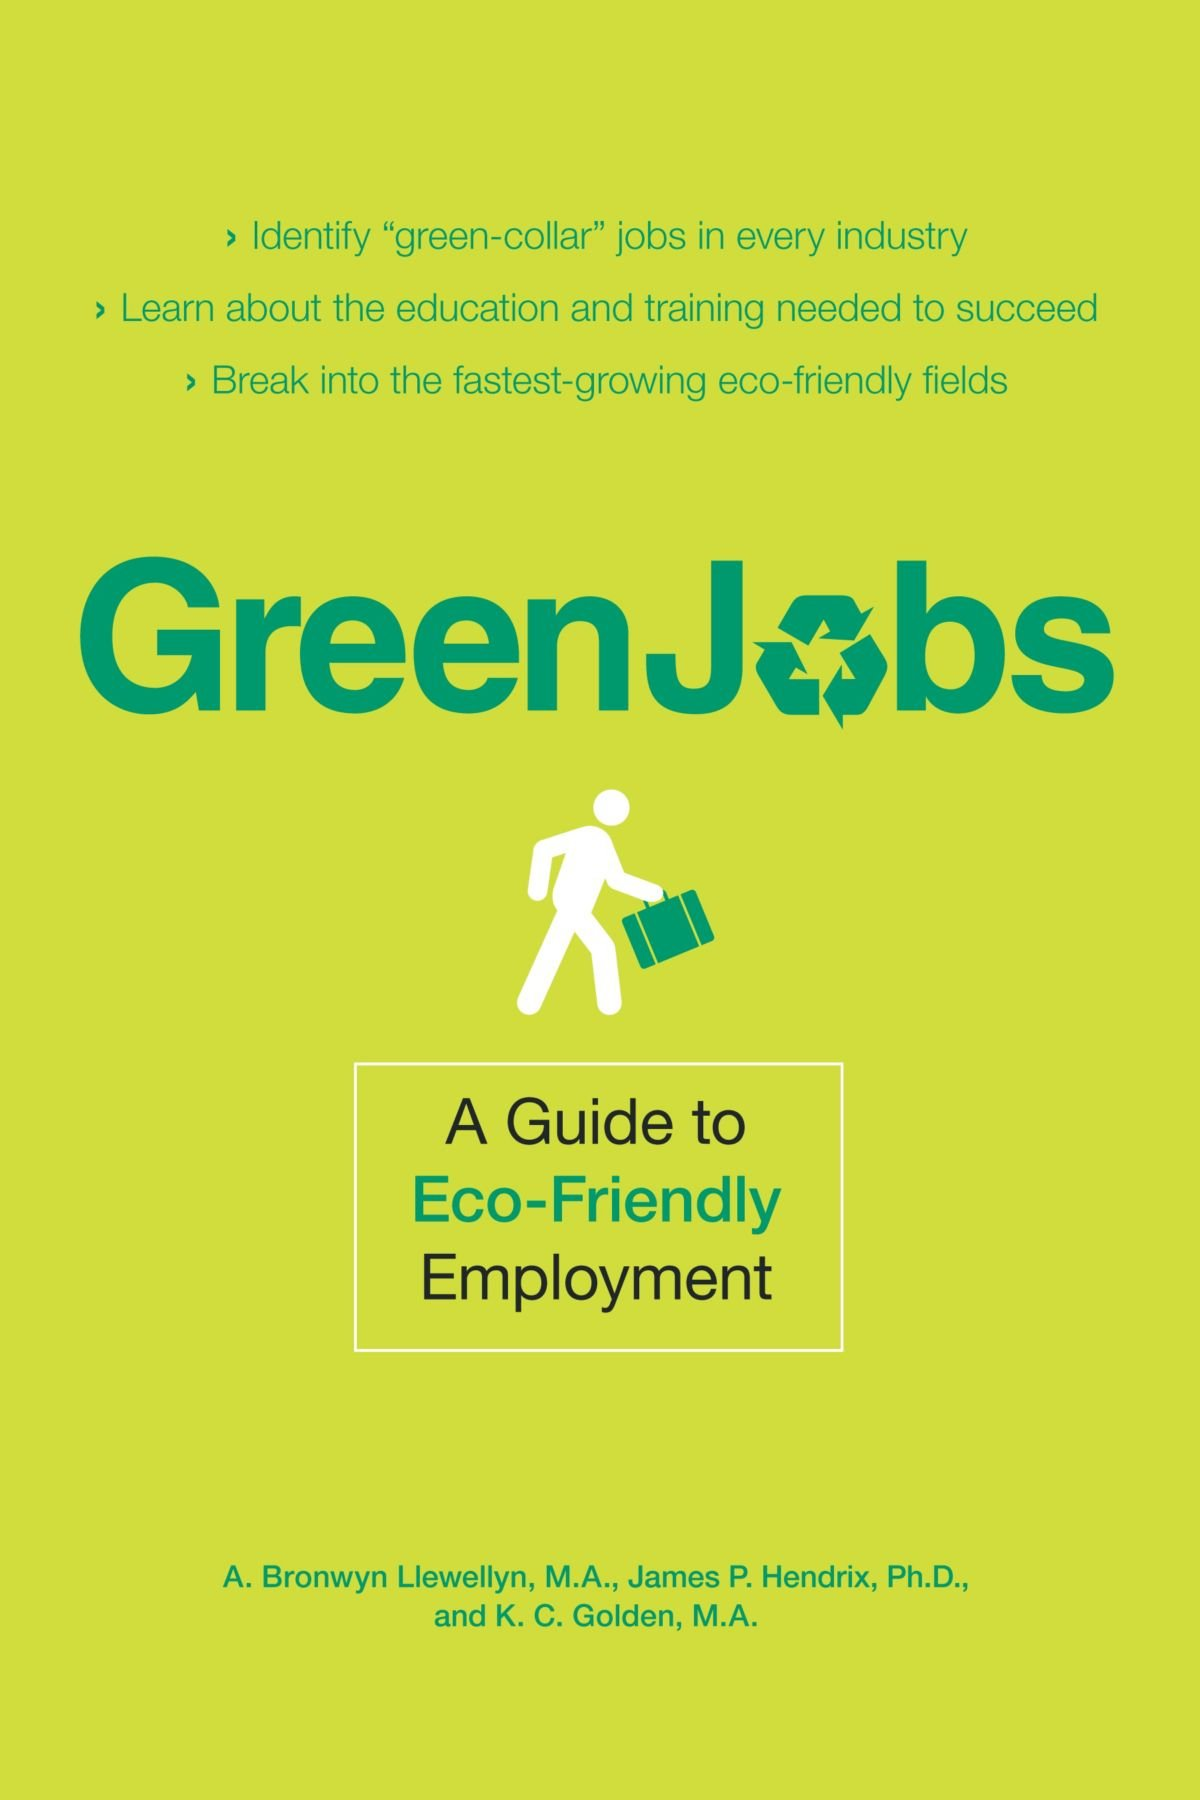 environmental career books com green jobs a guide to eco friendly employment